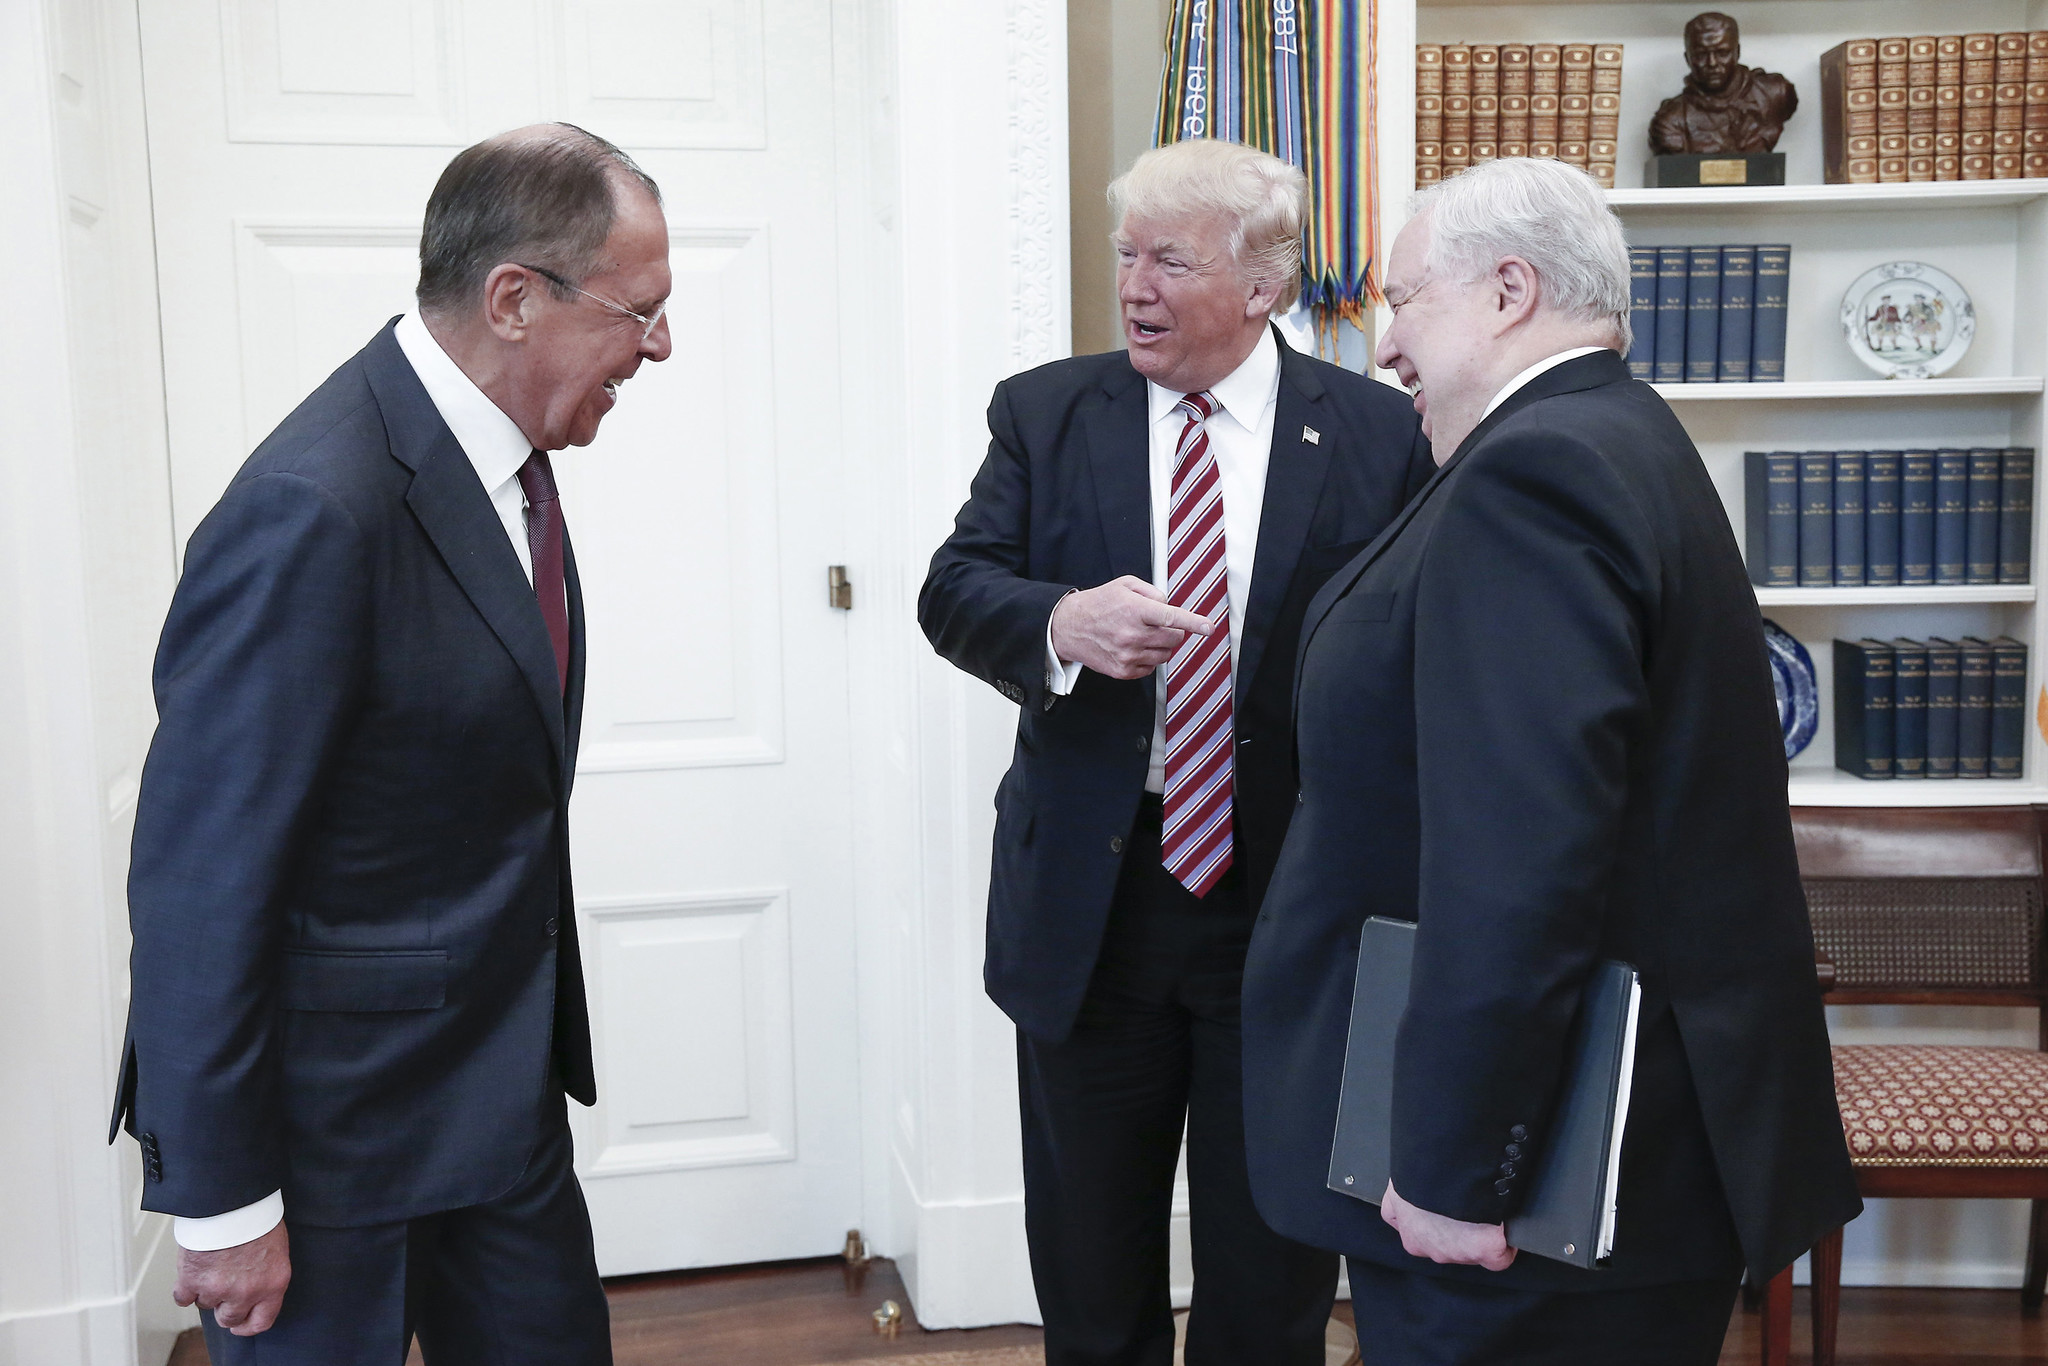 President Trump meets with Russian officials in the Oval Office